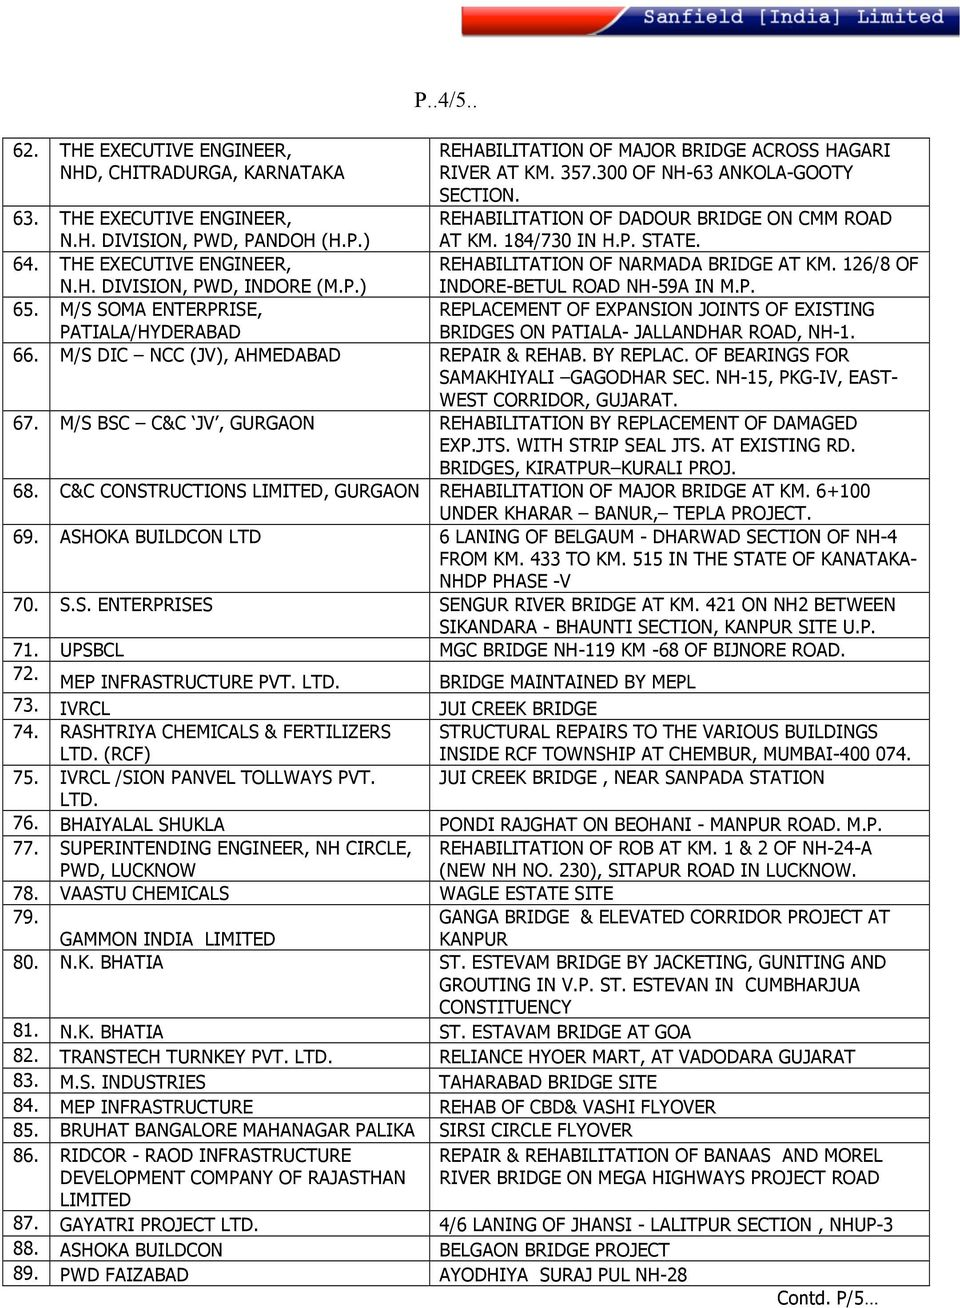 63. THE EXECUTIVE ENGINEER, N.H. DIVISION, PWD, PANDOH (H.P.) 64. THE EXECUTIVE ENGINEER, N.H. DIVISION, PWD, INDORE (M.P.) 65. M/S SOMA ENTERPRISE, PATIALA/HYDERABAD 66.